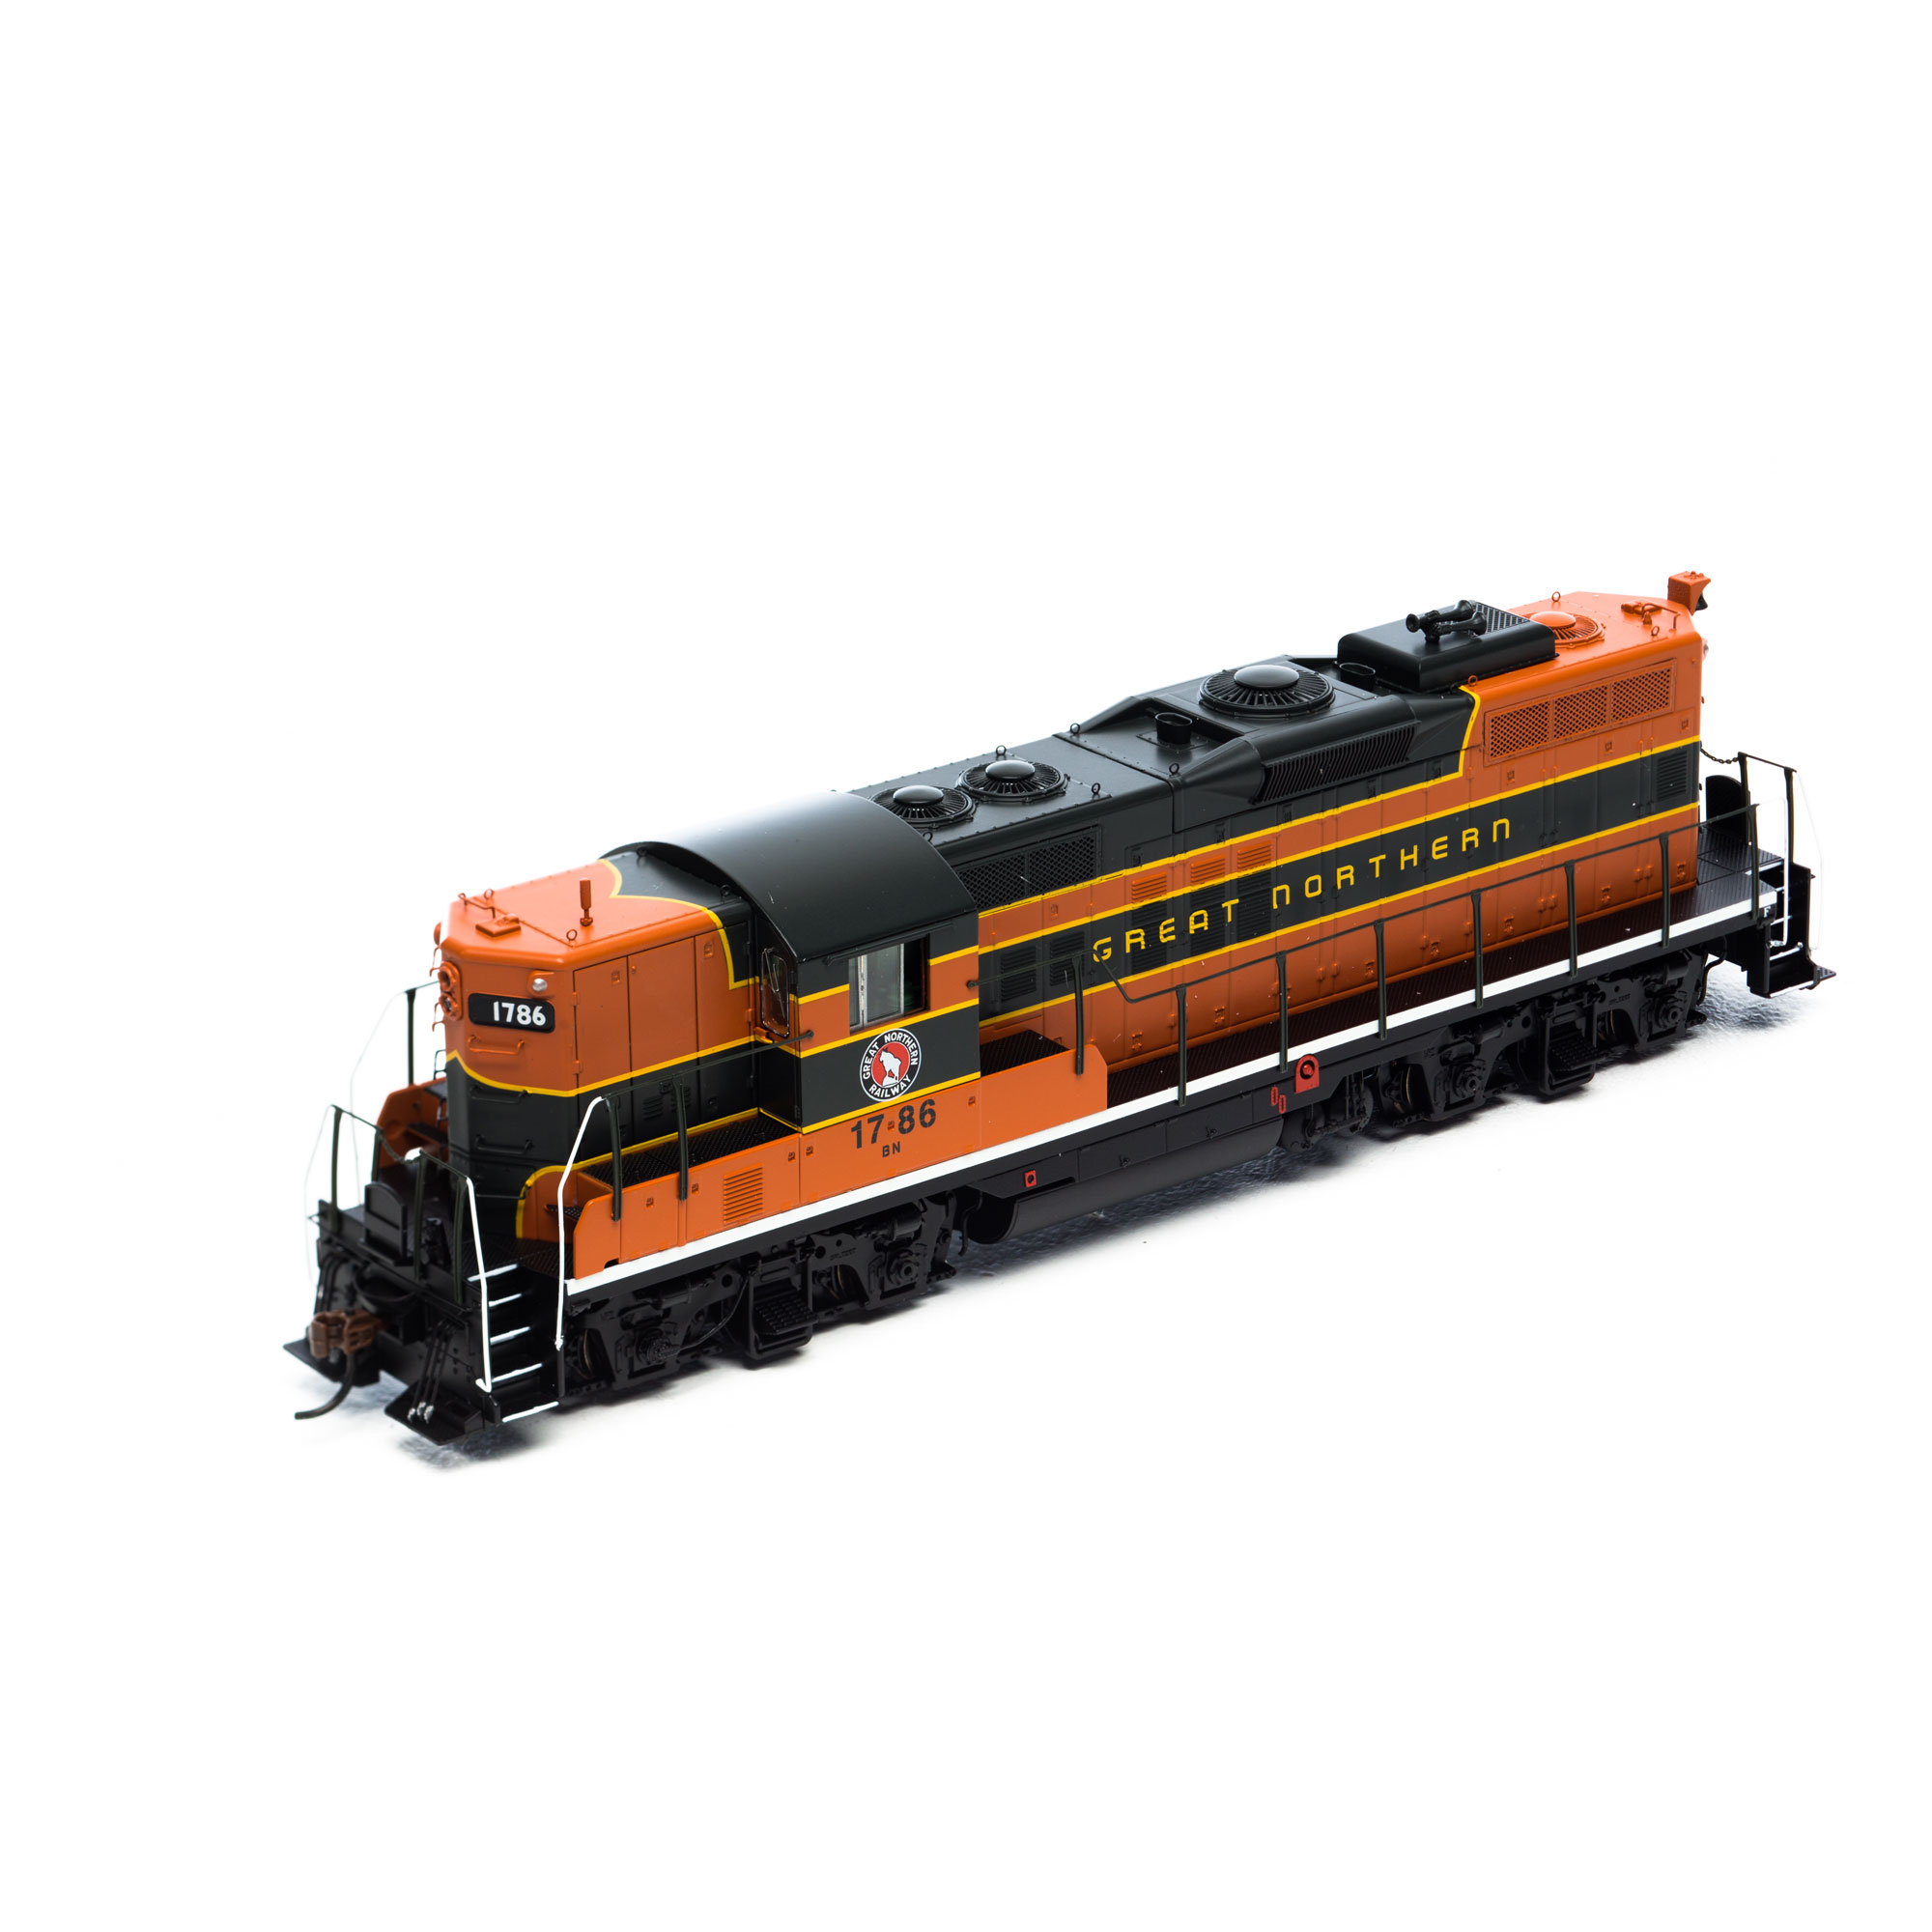 Ho Gp9 W Dcc Amp Sound Bn 1786 Athg64266 Athearn Trains